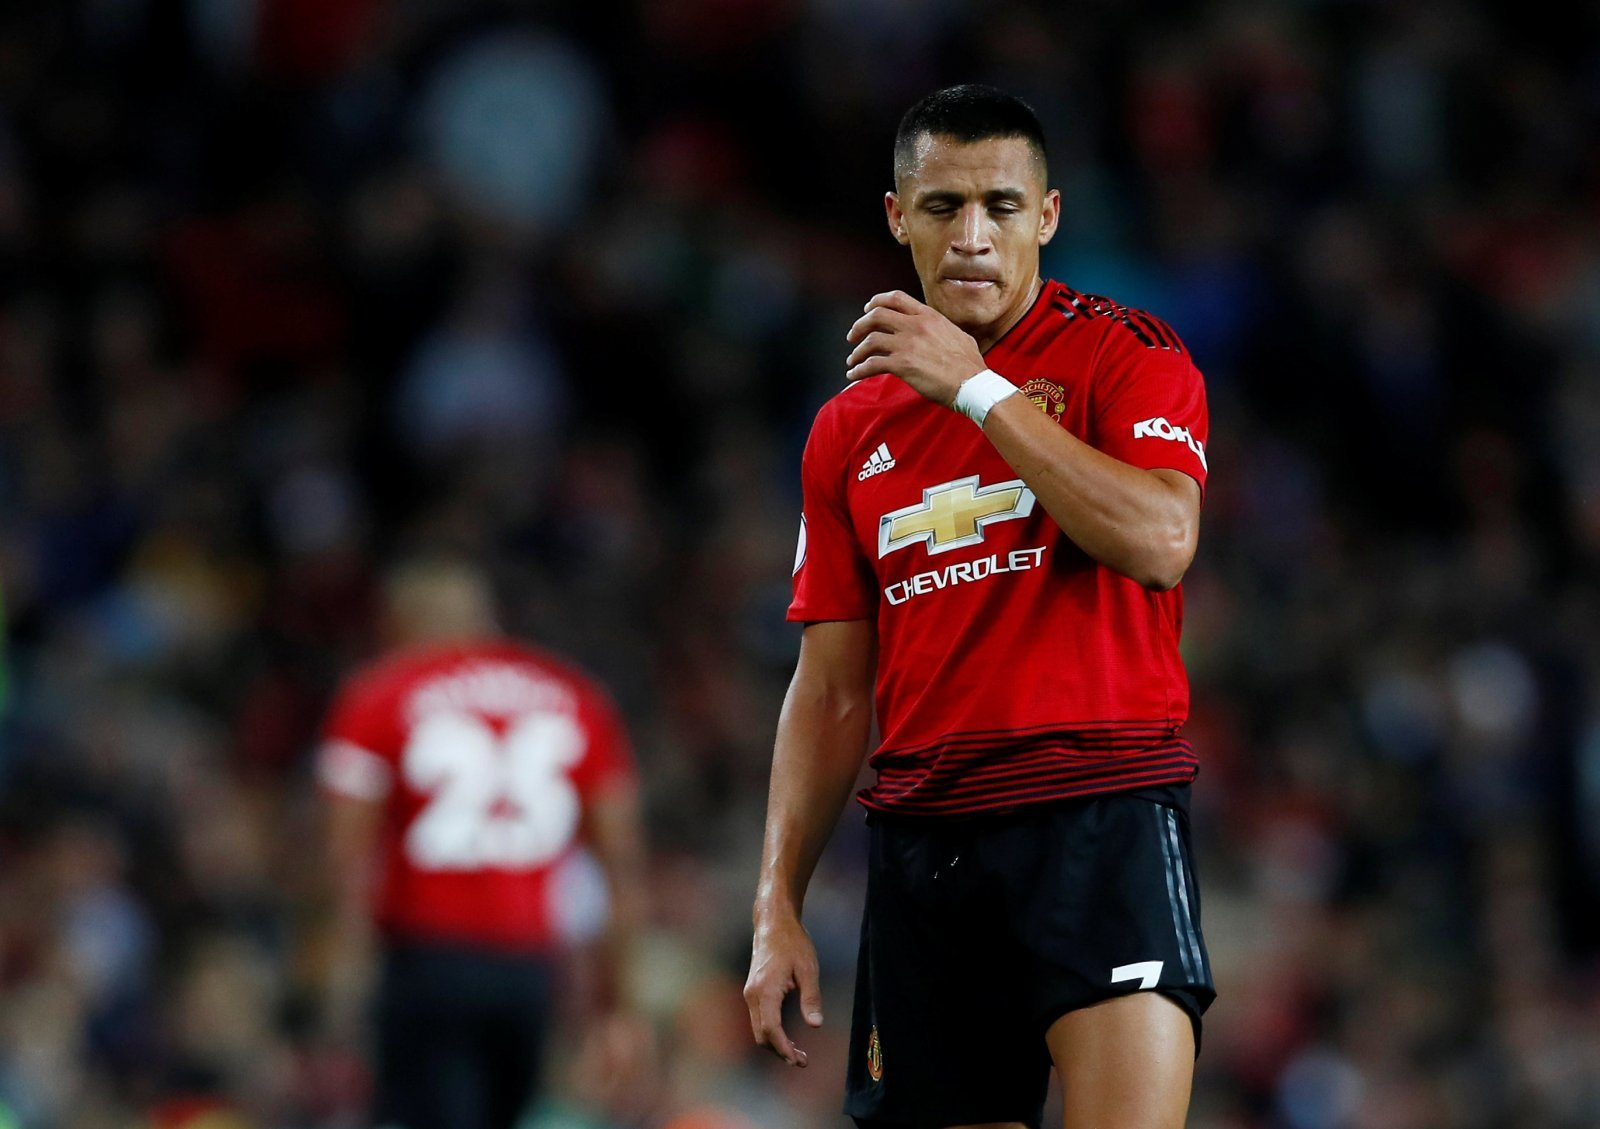 Overwhelming amount of Manchester United fans regret signing Alexis Sanchez